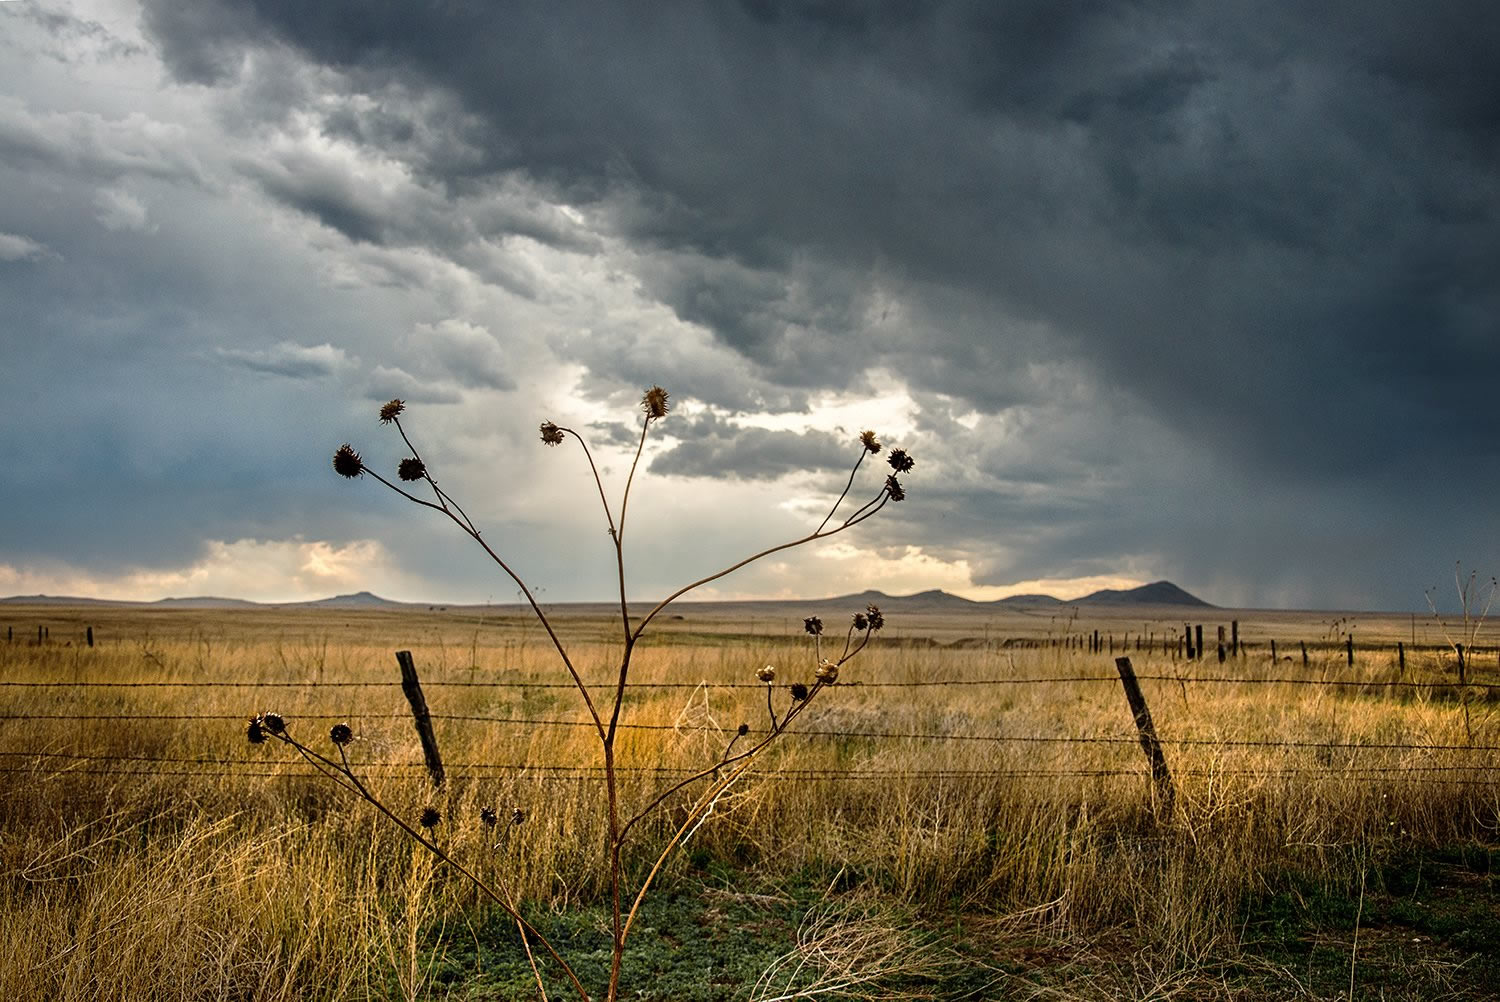 fields and clouds photo by Jody Miller